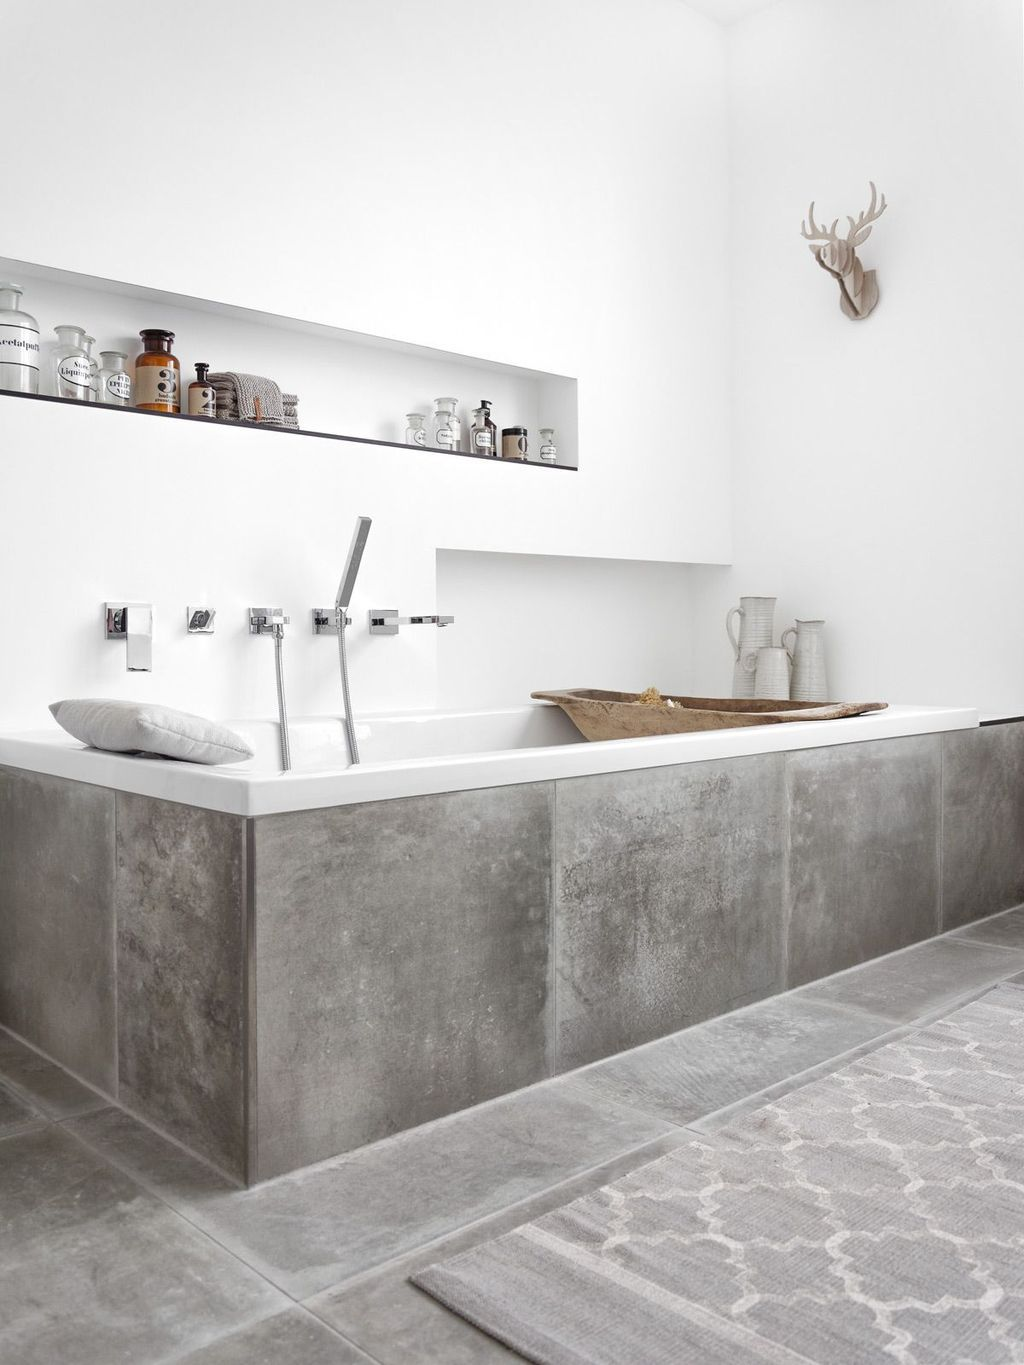 46 Wonderful And Cozy Modern Bathtub Design Ideas | Bathroom Ideas ...